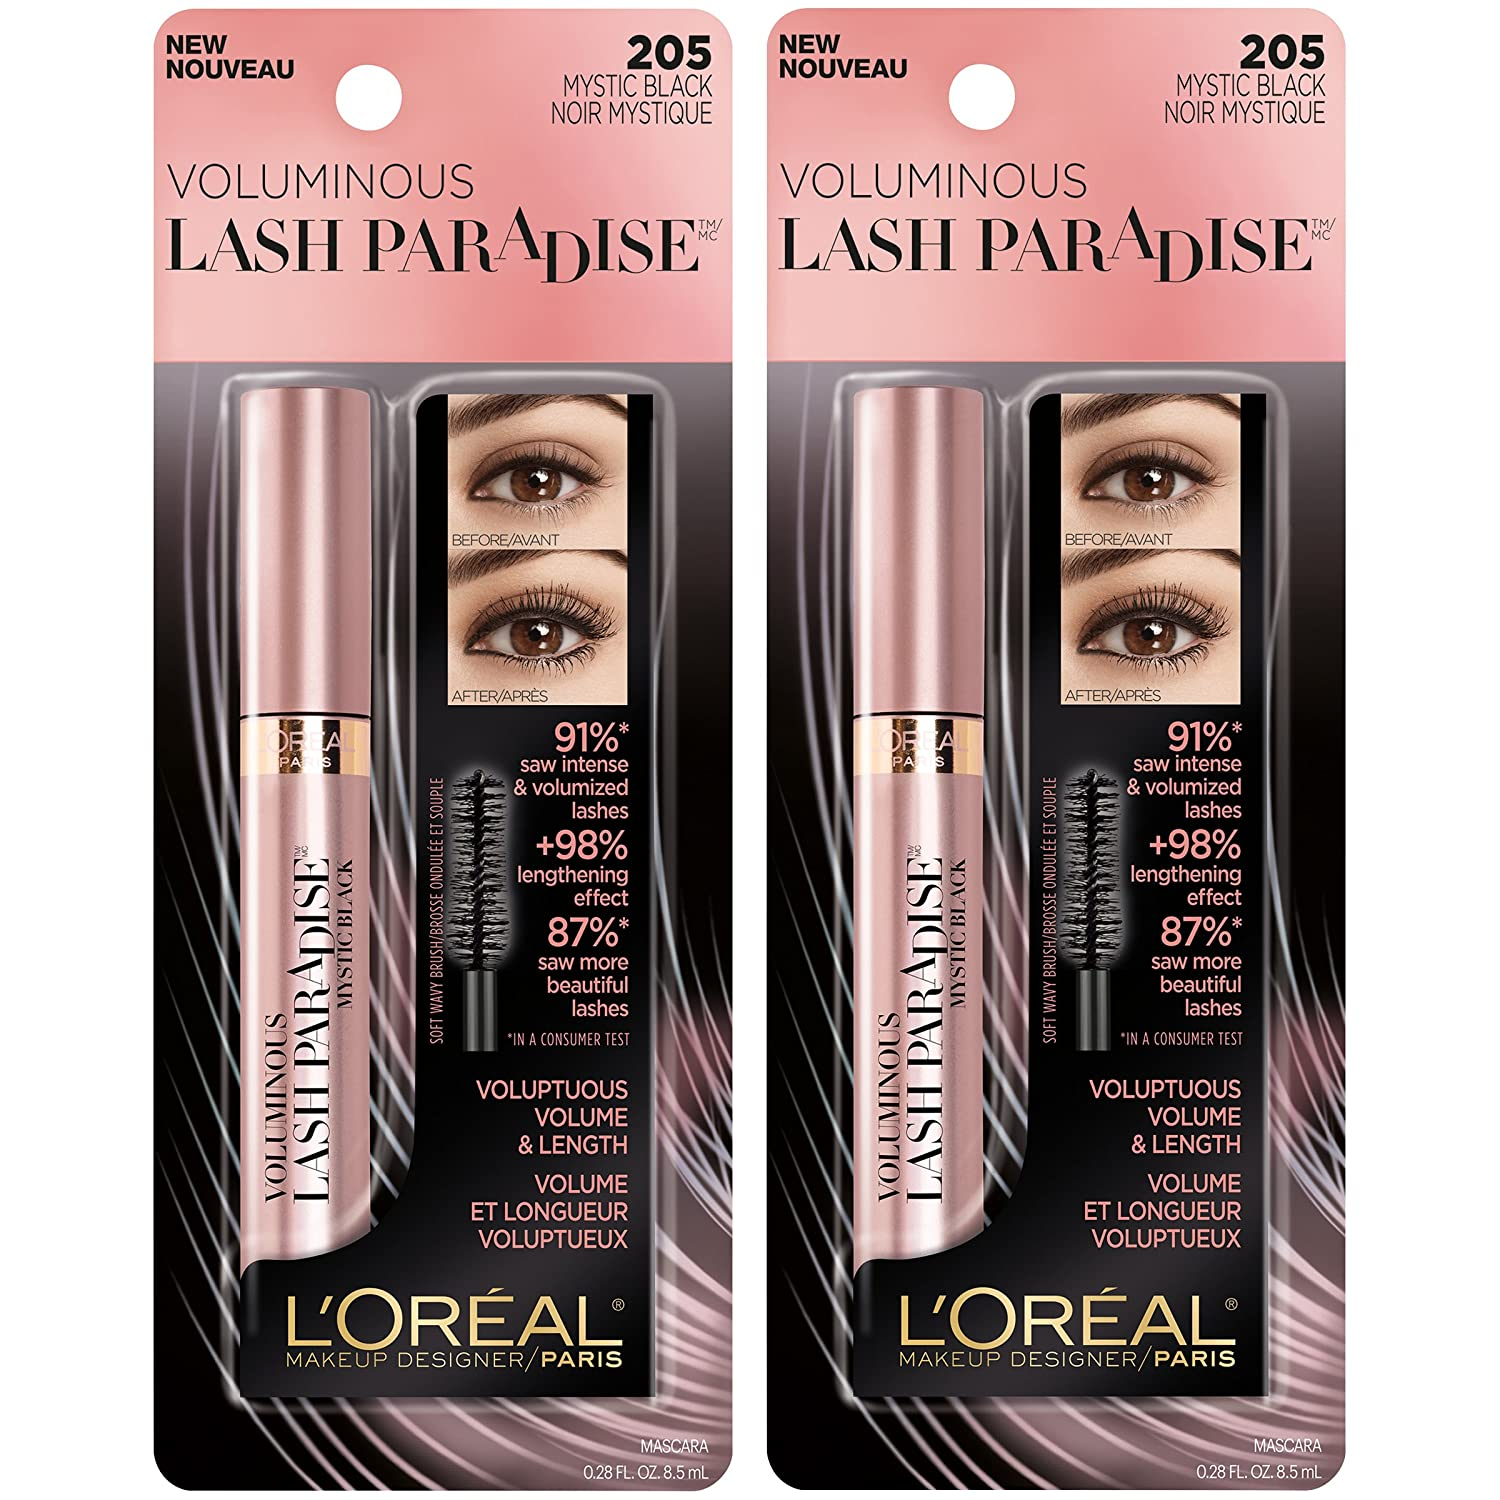 cf96e4511c8 Amazon.com : L'Oreal Paris Makeup Lash Paradise Mascara, Voluptuous Volume,  Intense Length, Feathery Soft Full Lashes, No Smudging, No Clumping, ...